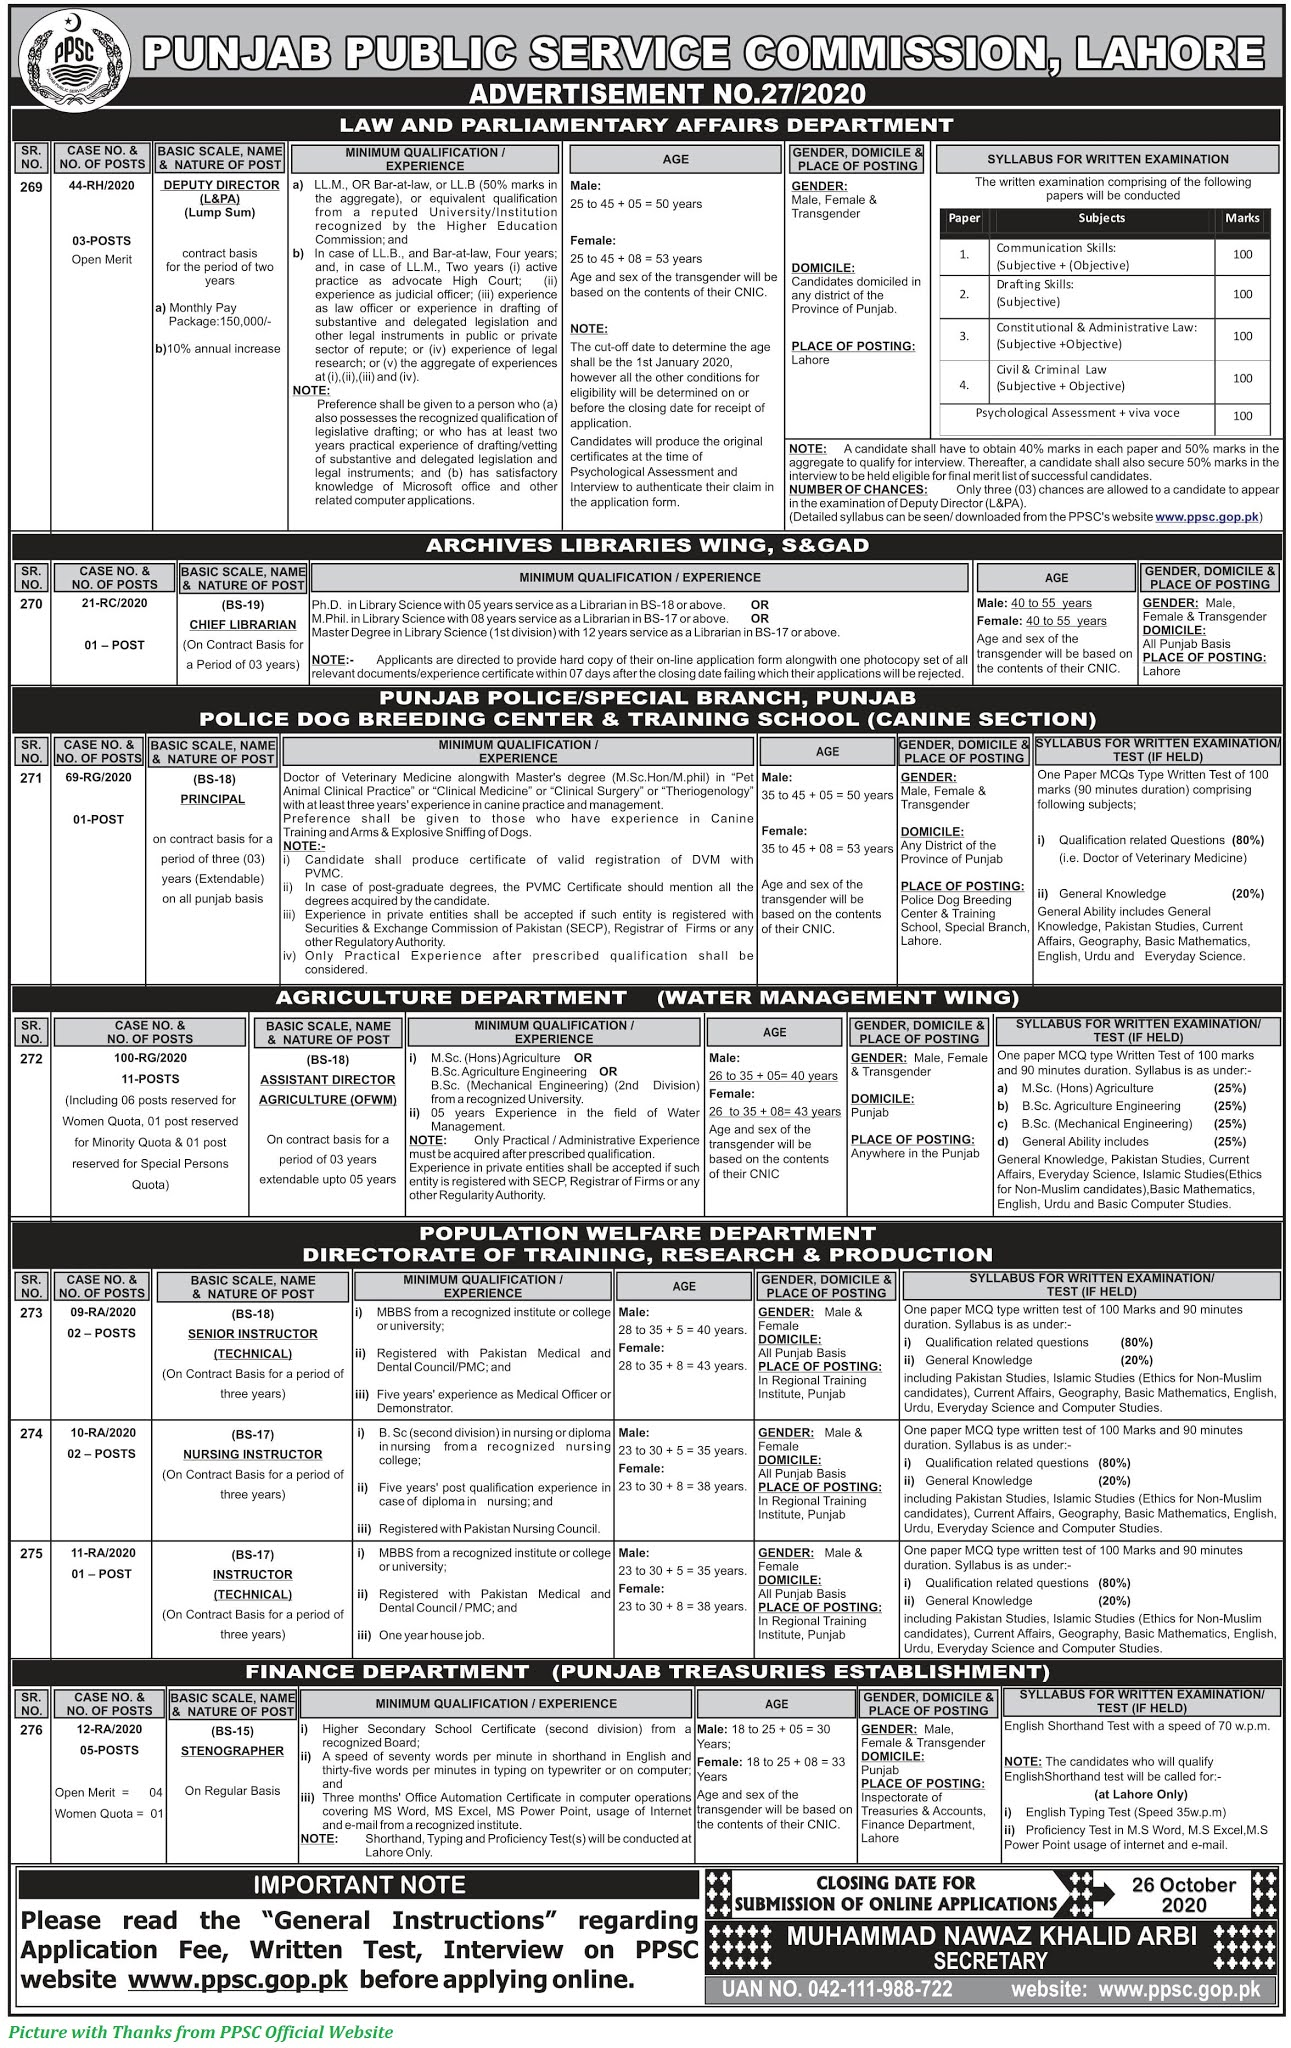 PPSC Jobs 2020 - Apply Online for Latest PPSC Jobs October 2020 Advertisement No. 27/2020